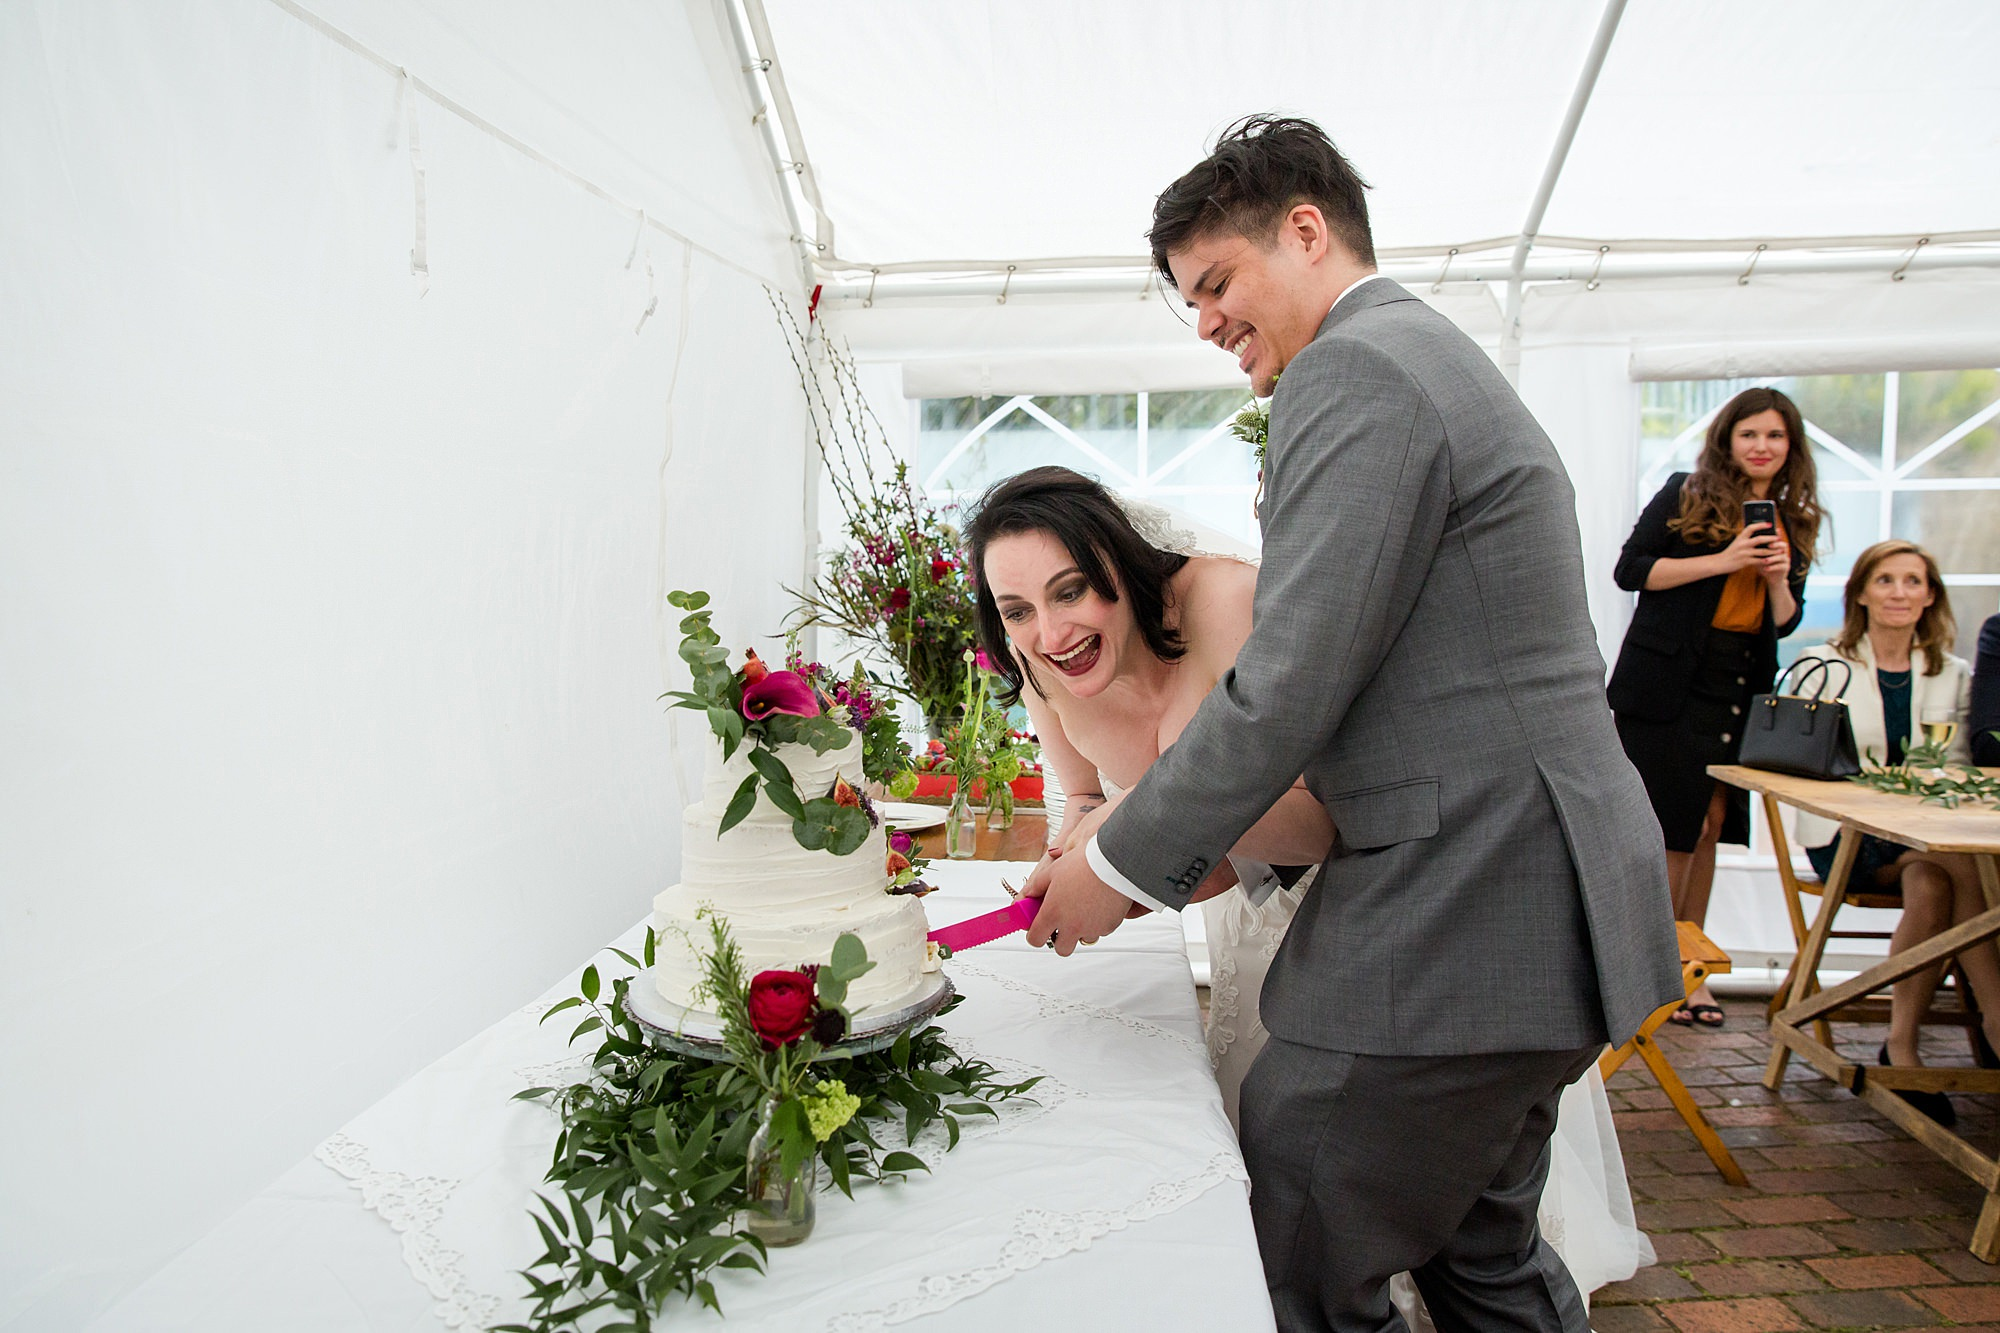 bride and groom laugh as they cut wedding cake